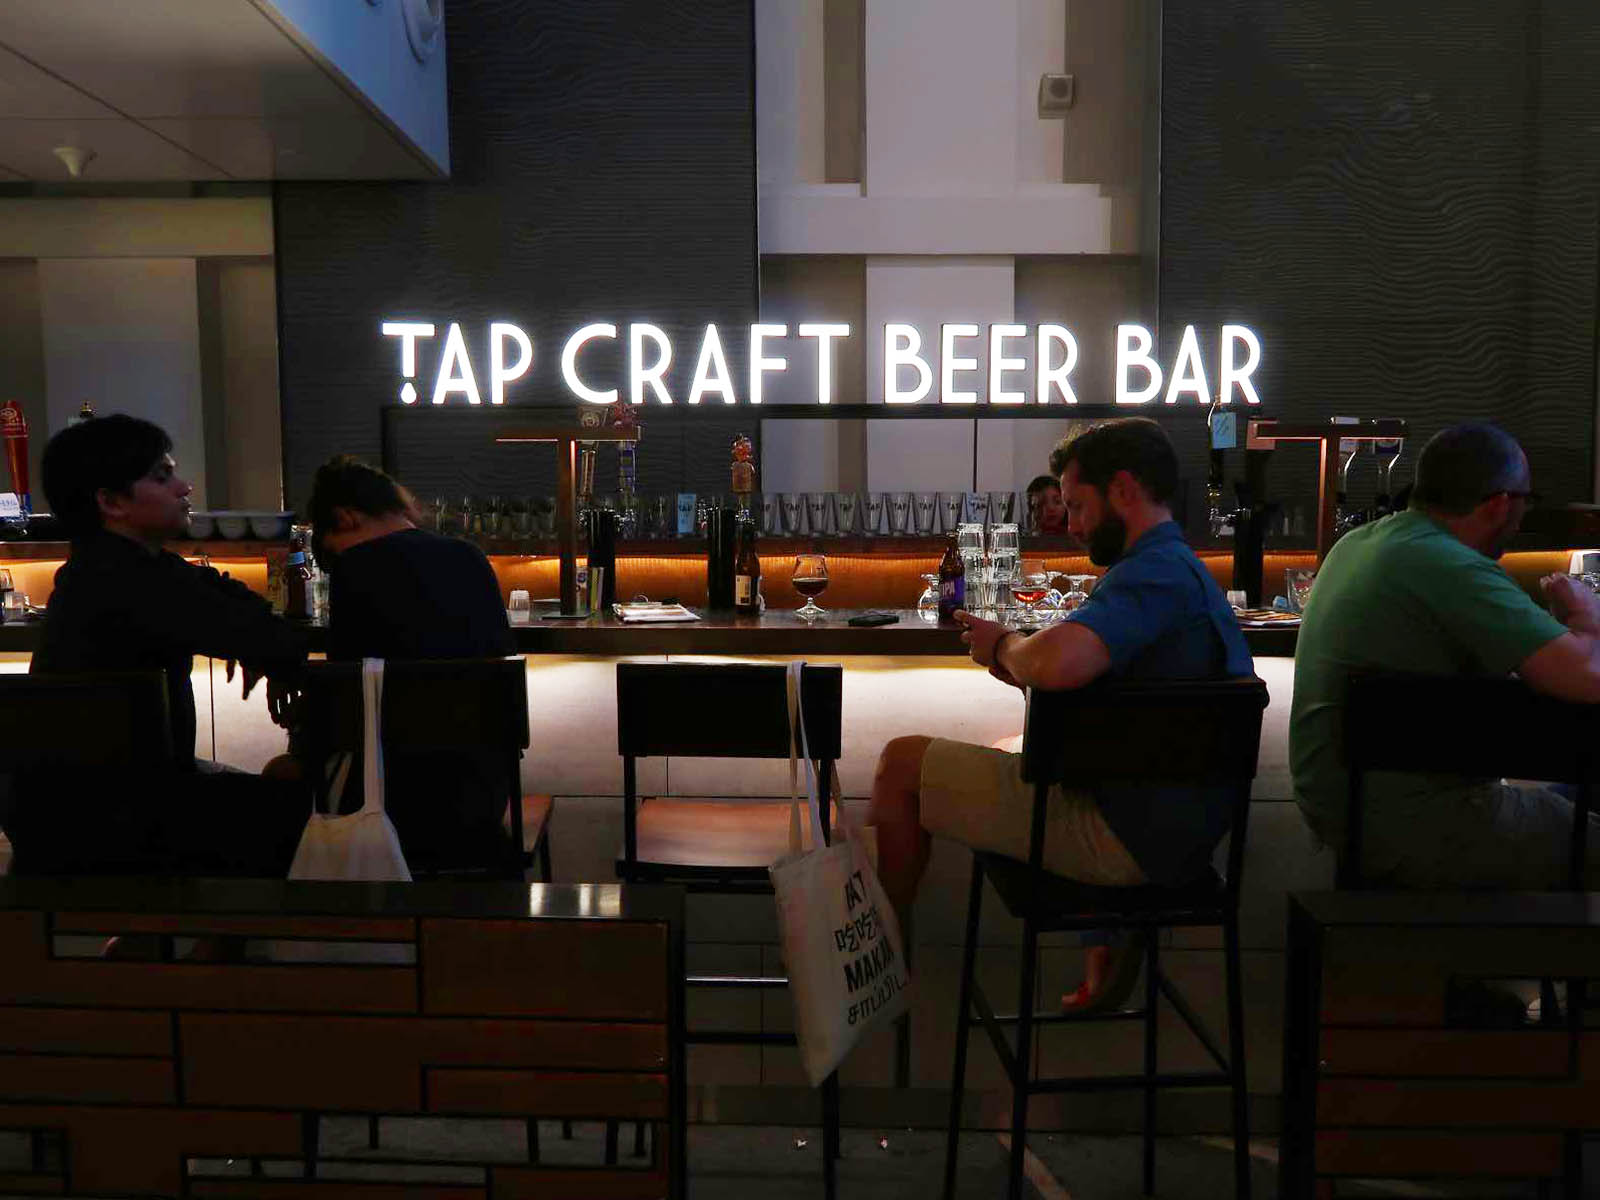 TAP CRAFT BEER BAR